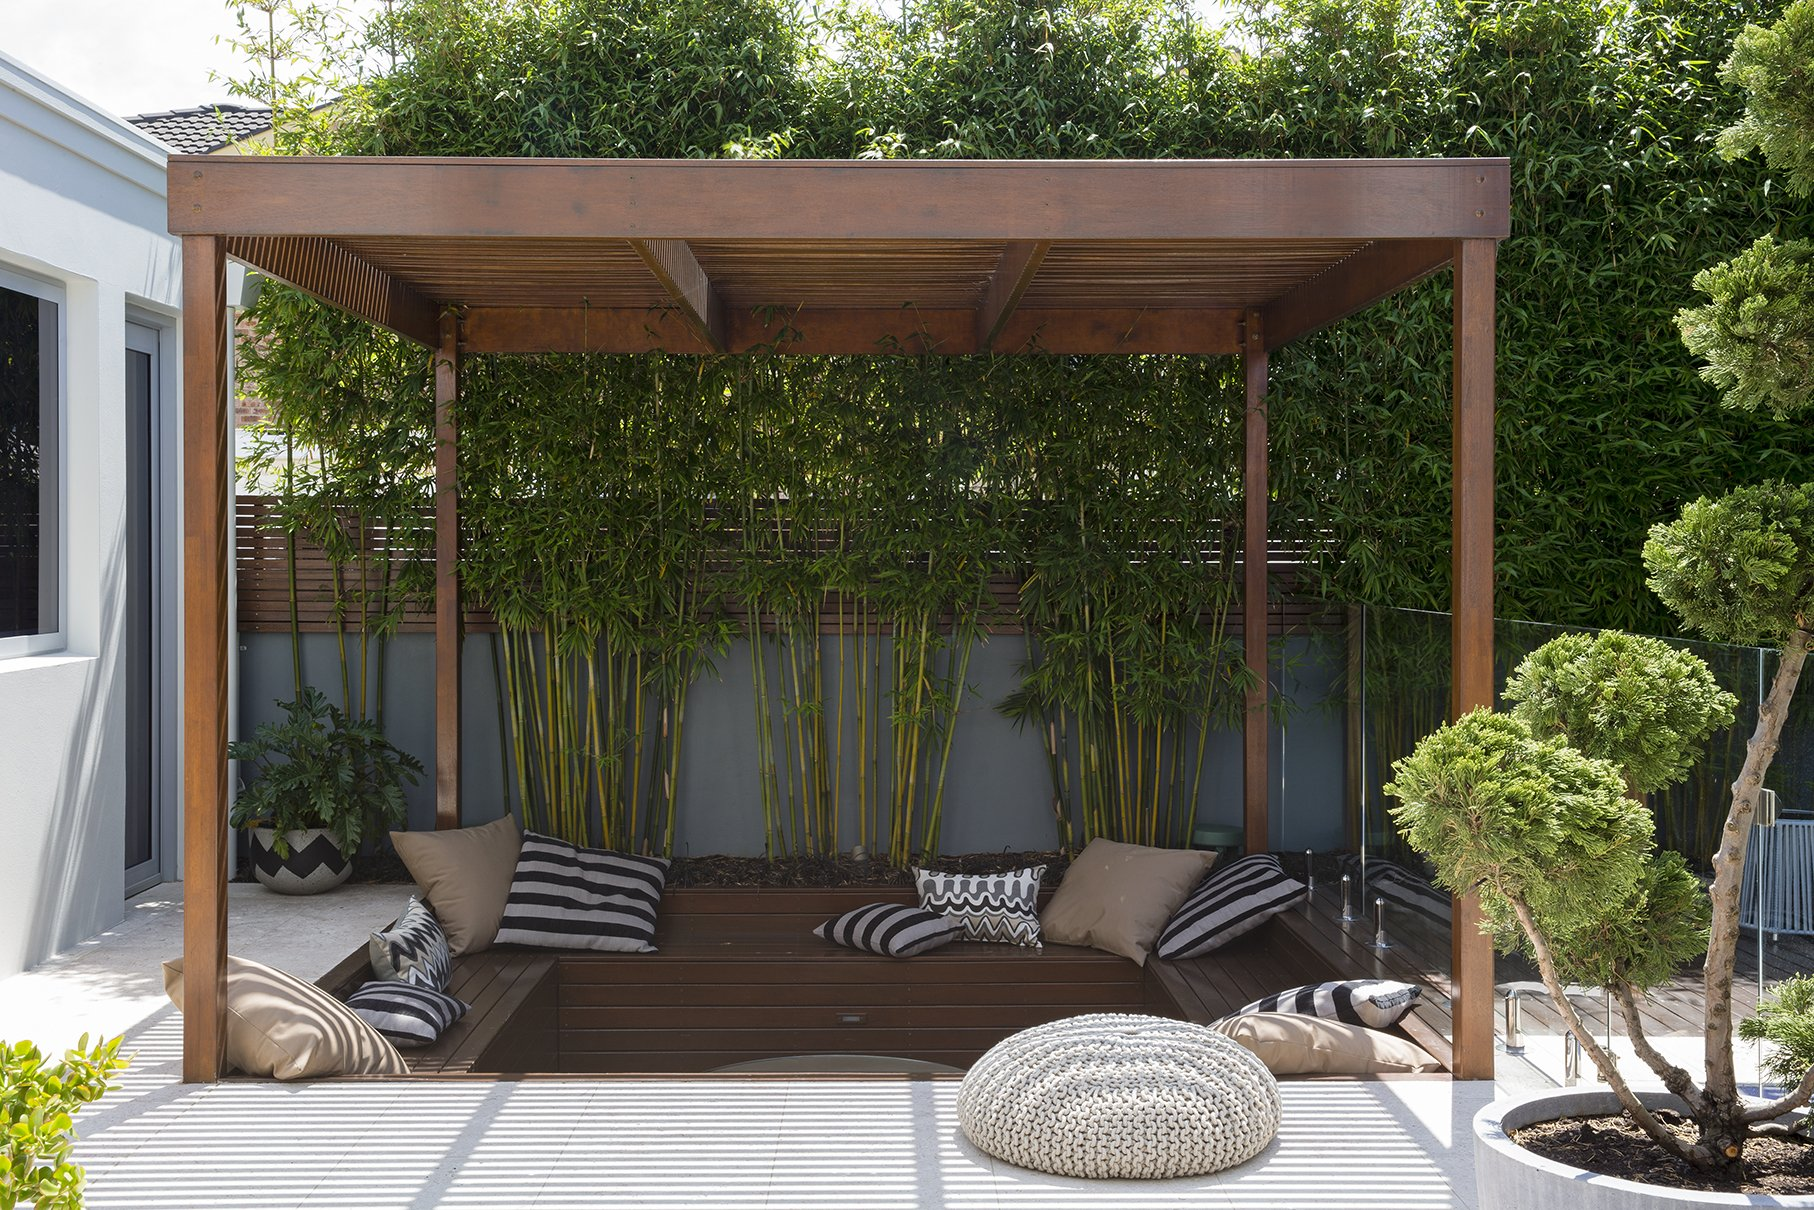 Timber sheltered area with seating and cushions in a backyard